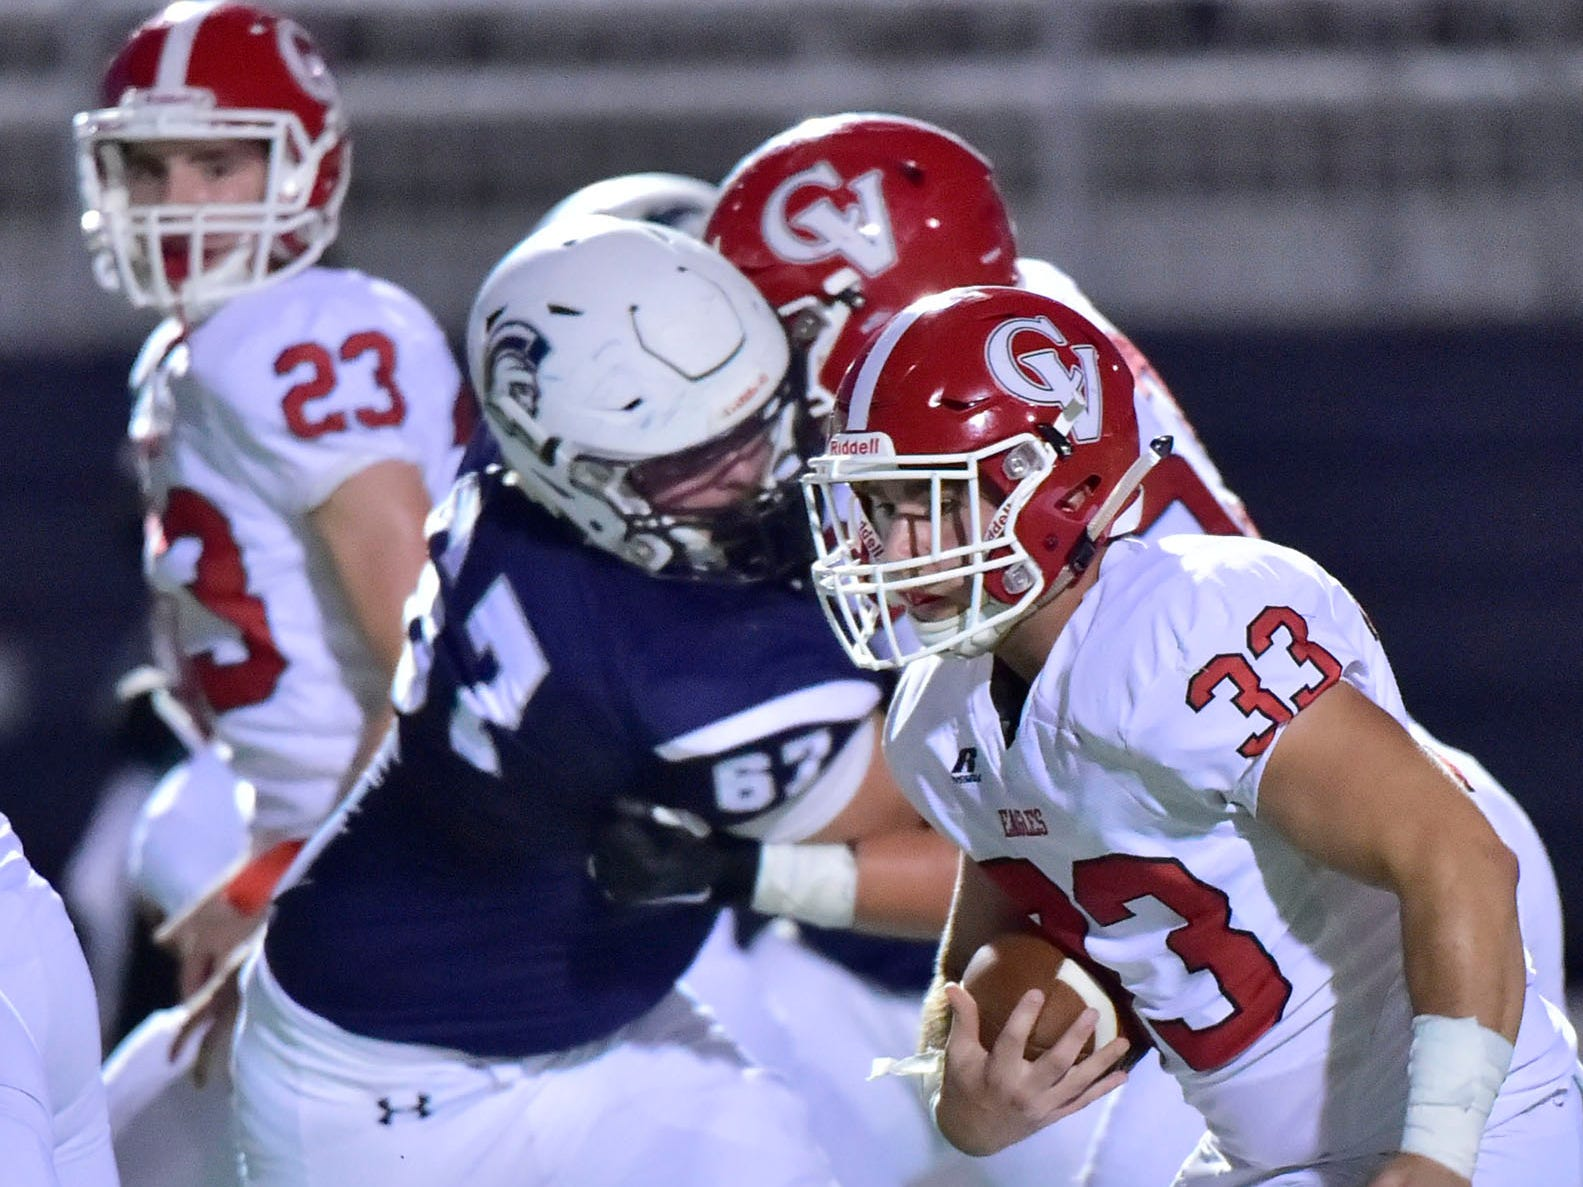 Chambersburg's Brock Harmon (67) moves in to tackle Conner Madison of Cumberland Valley (33). Chambersburg Trojans are 5-1 after a homecoming victory over Cumberland Valley 28-14 in PIAA football on Friday, Sept. 28, 2018.